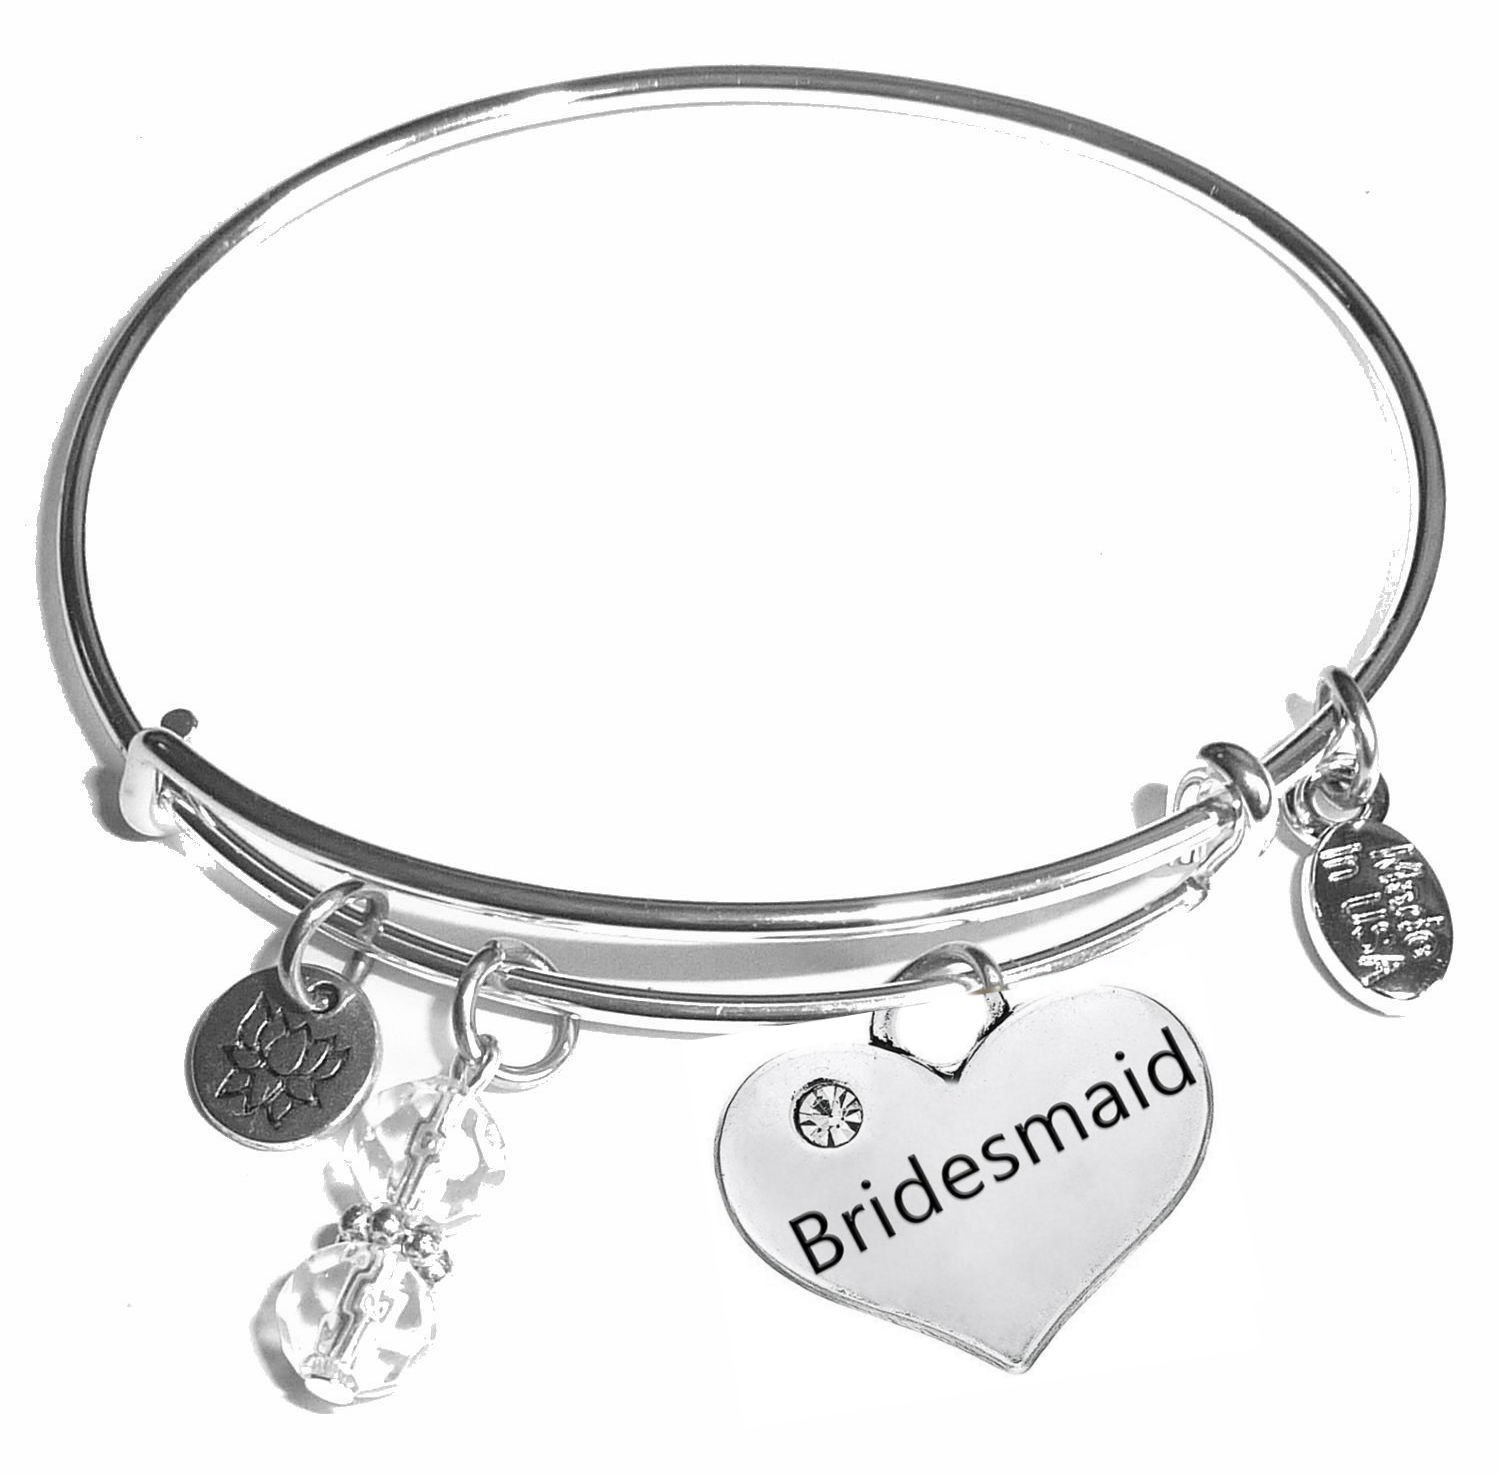 Message Charm (22 words to choose from) Expandable Wire Bangle Bracelet, in the popular style, COMES IN A GIFT BOX! (Bridesmaid)